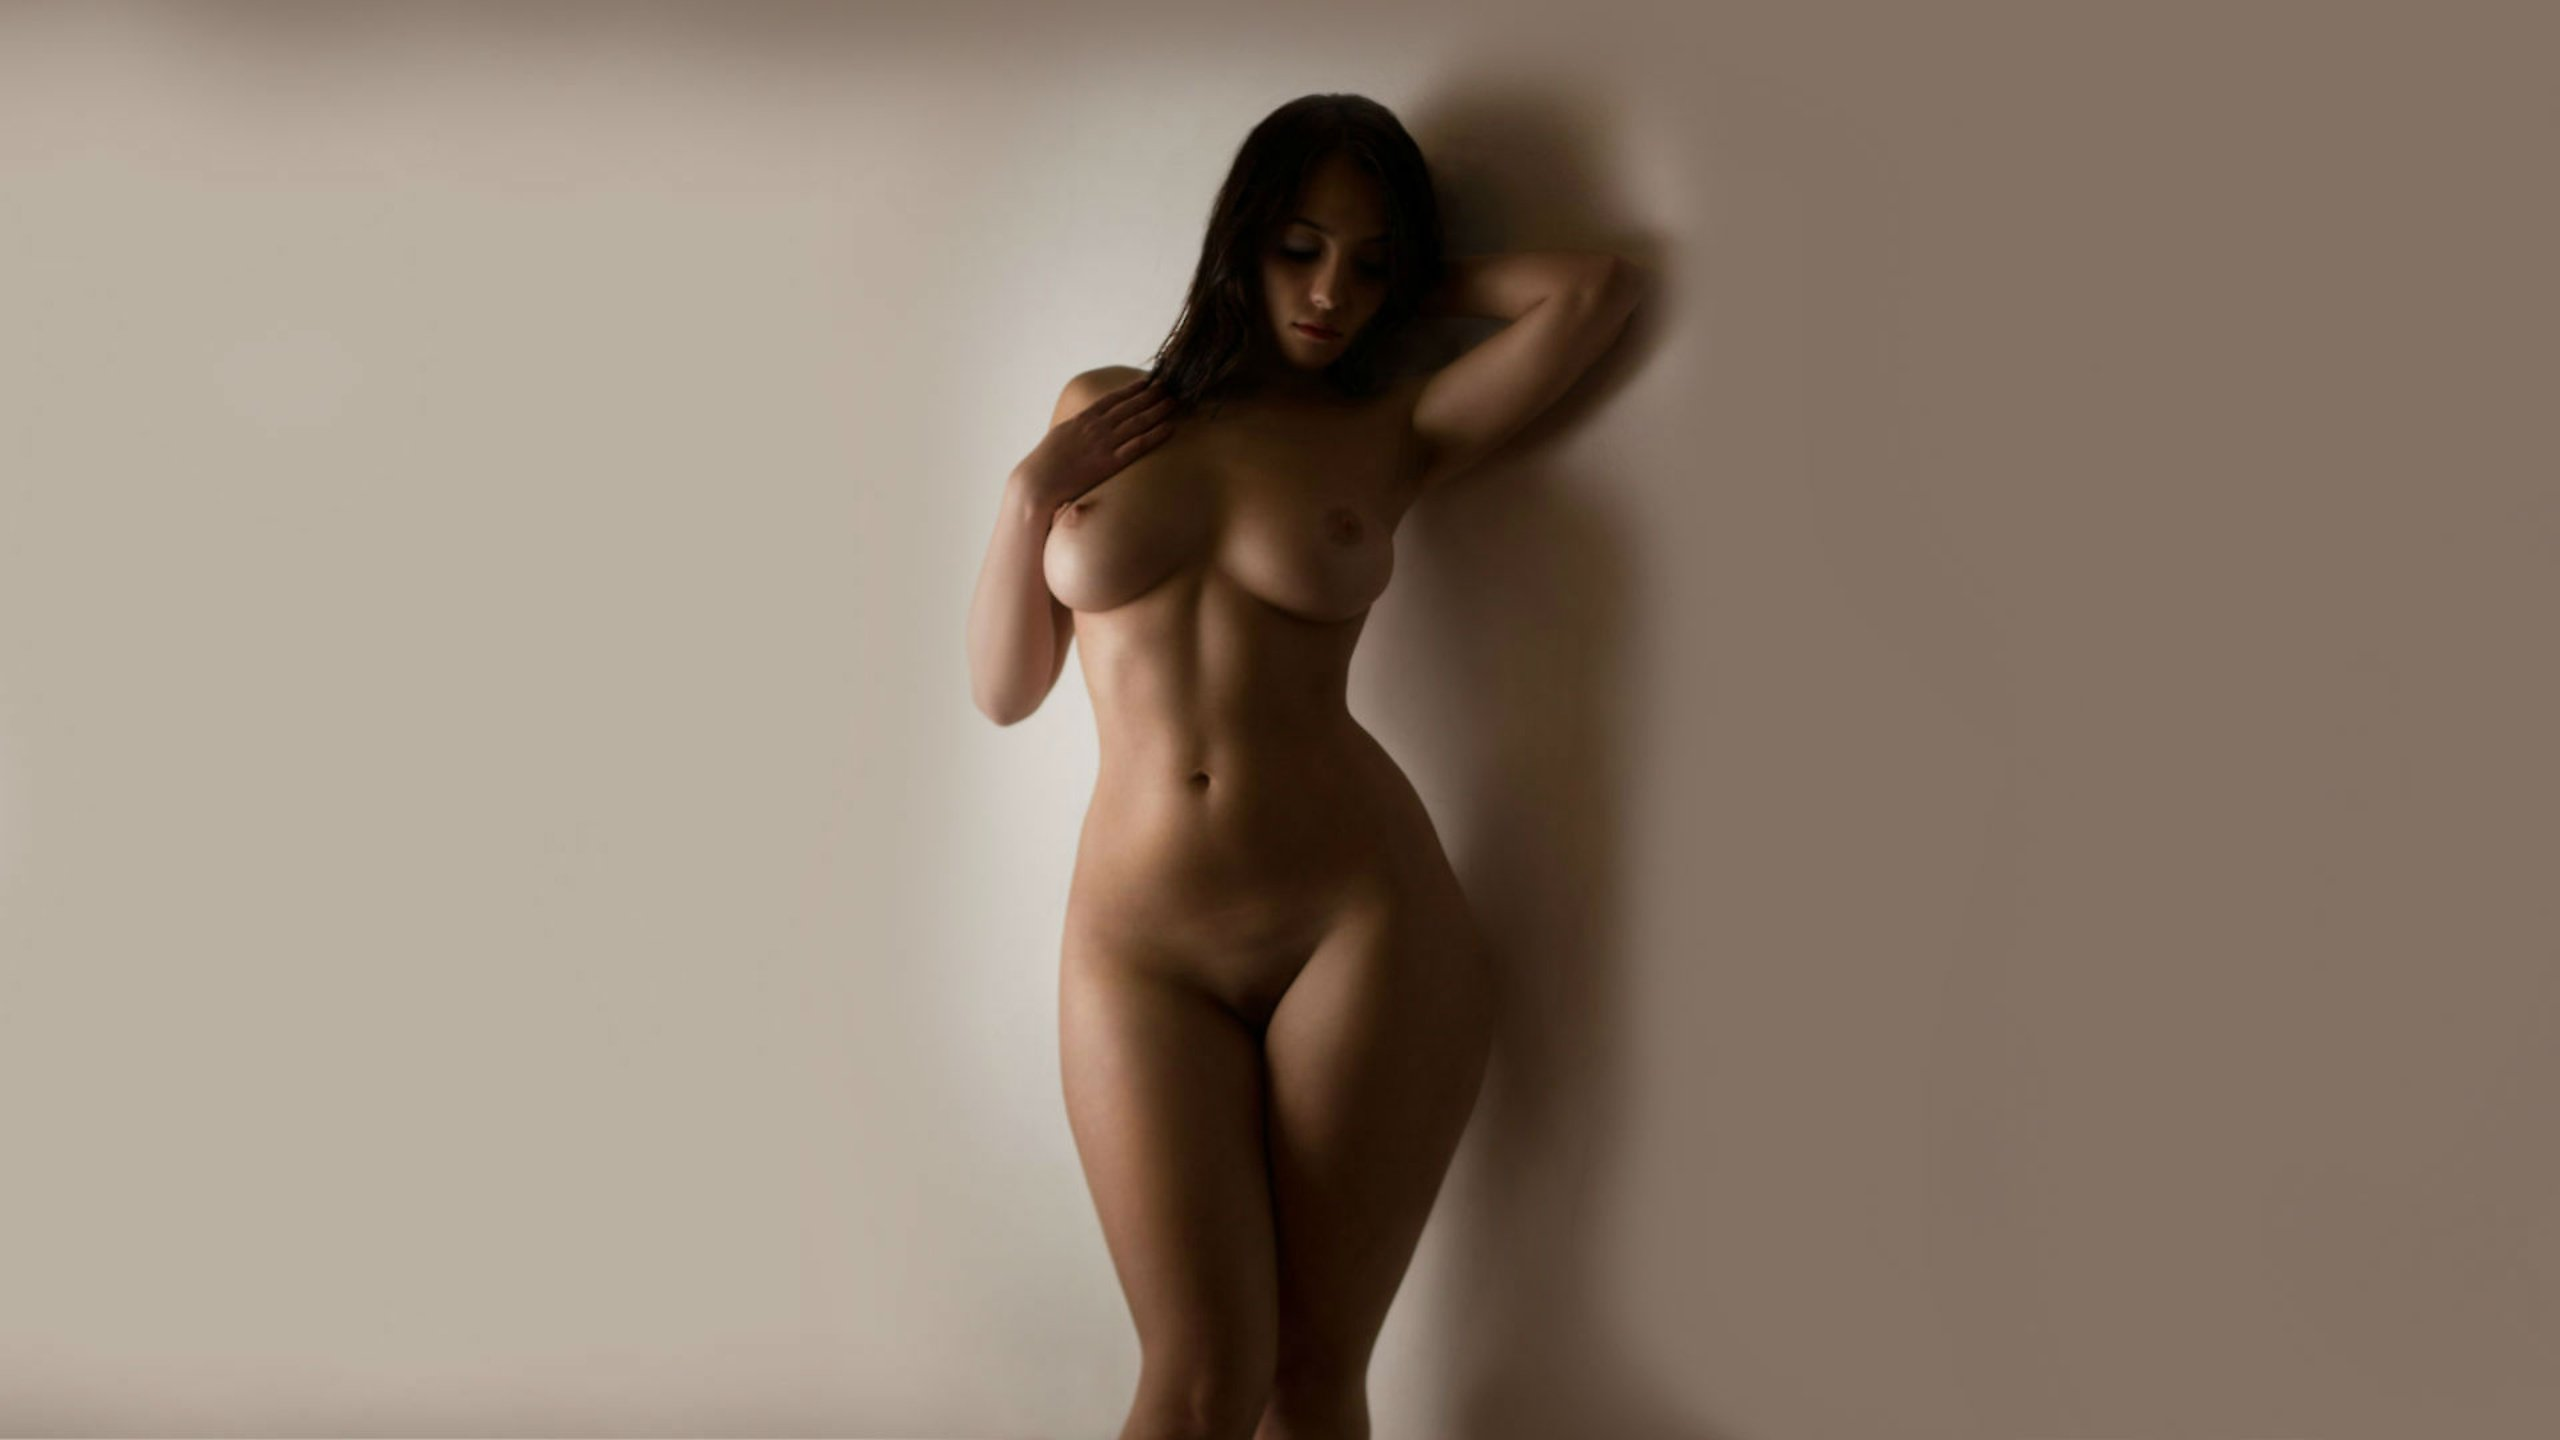 Naked hot sexy nude women hd wallpaper